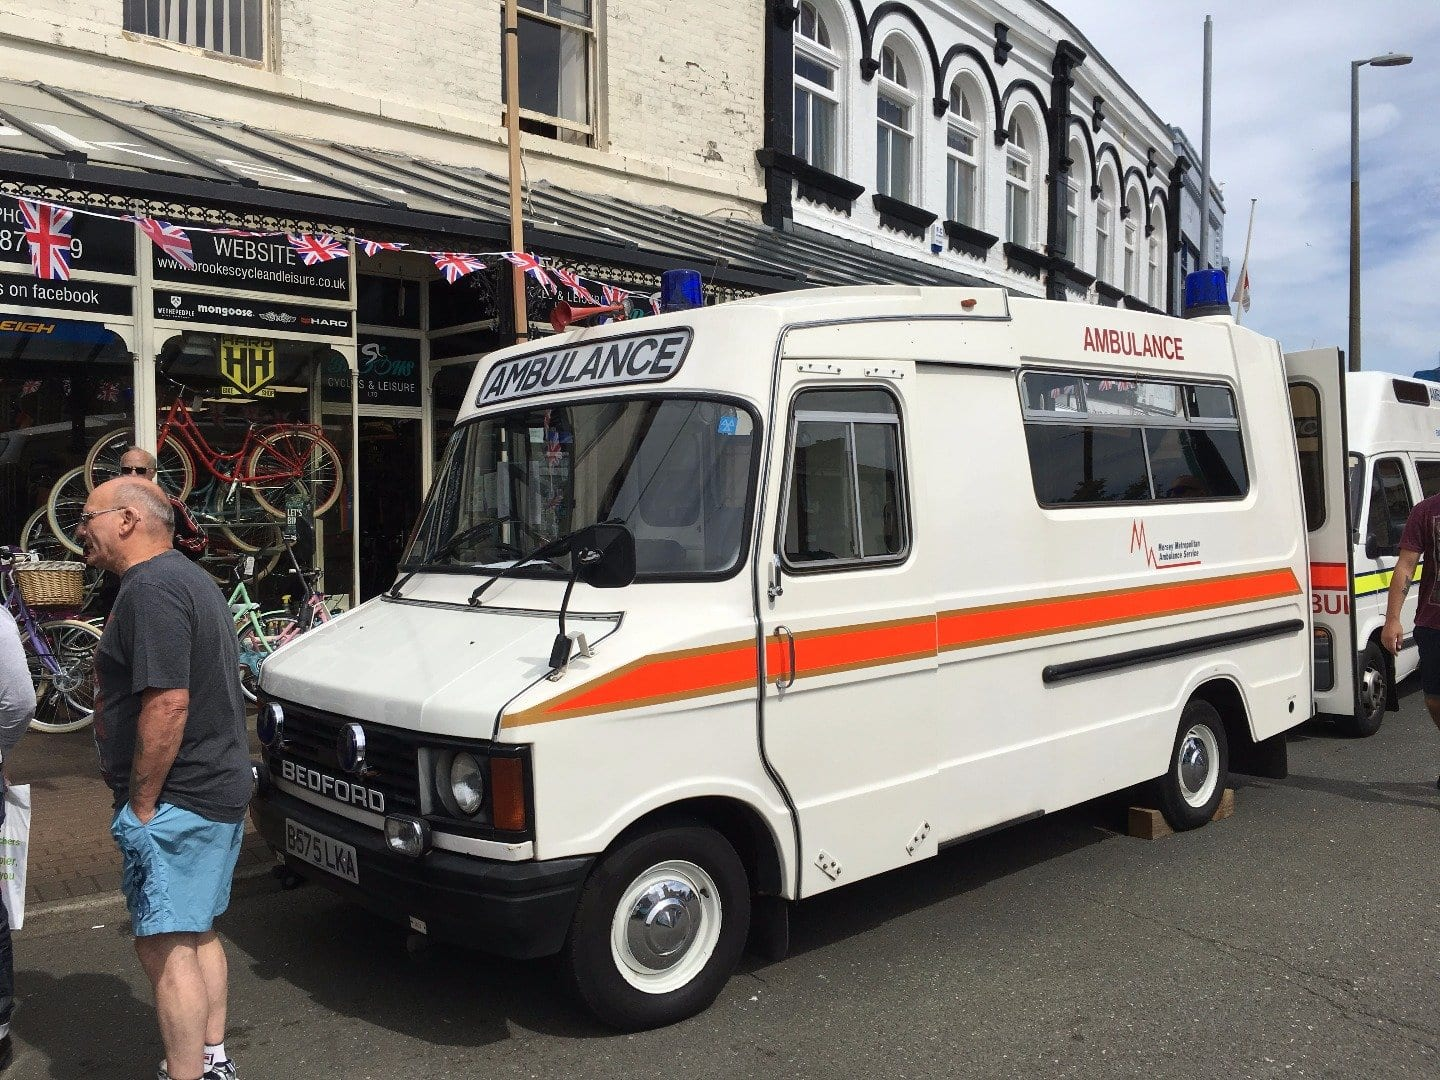 Old ambulance at Fleetwood Tram Sunday